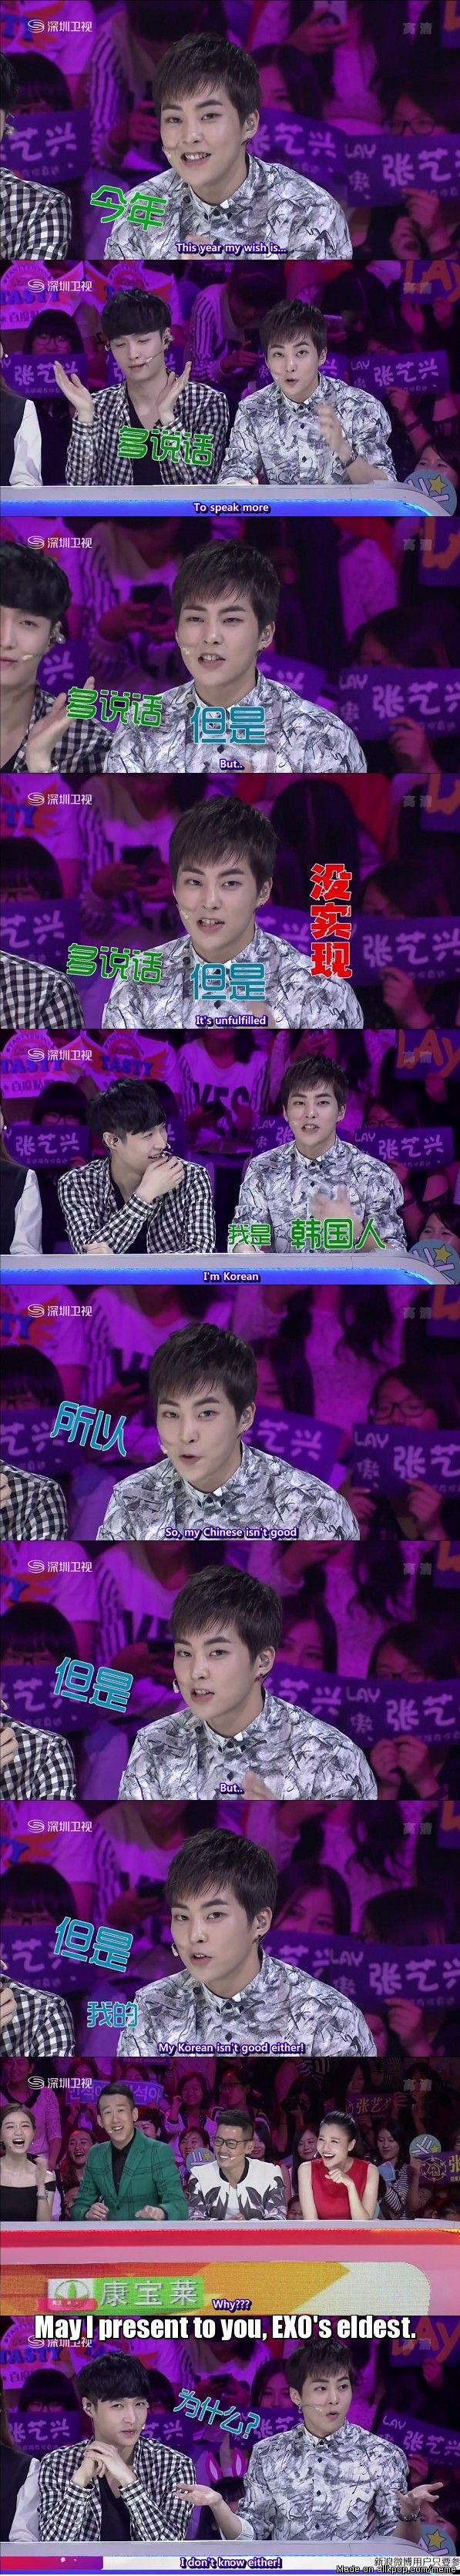 Awww Xiumin when I watched this I died he sang, danced and was absolutely adorable!